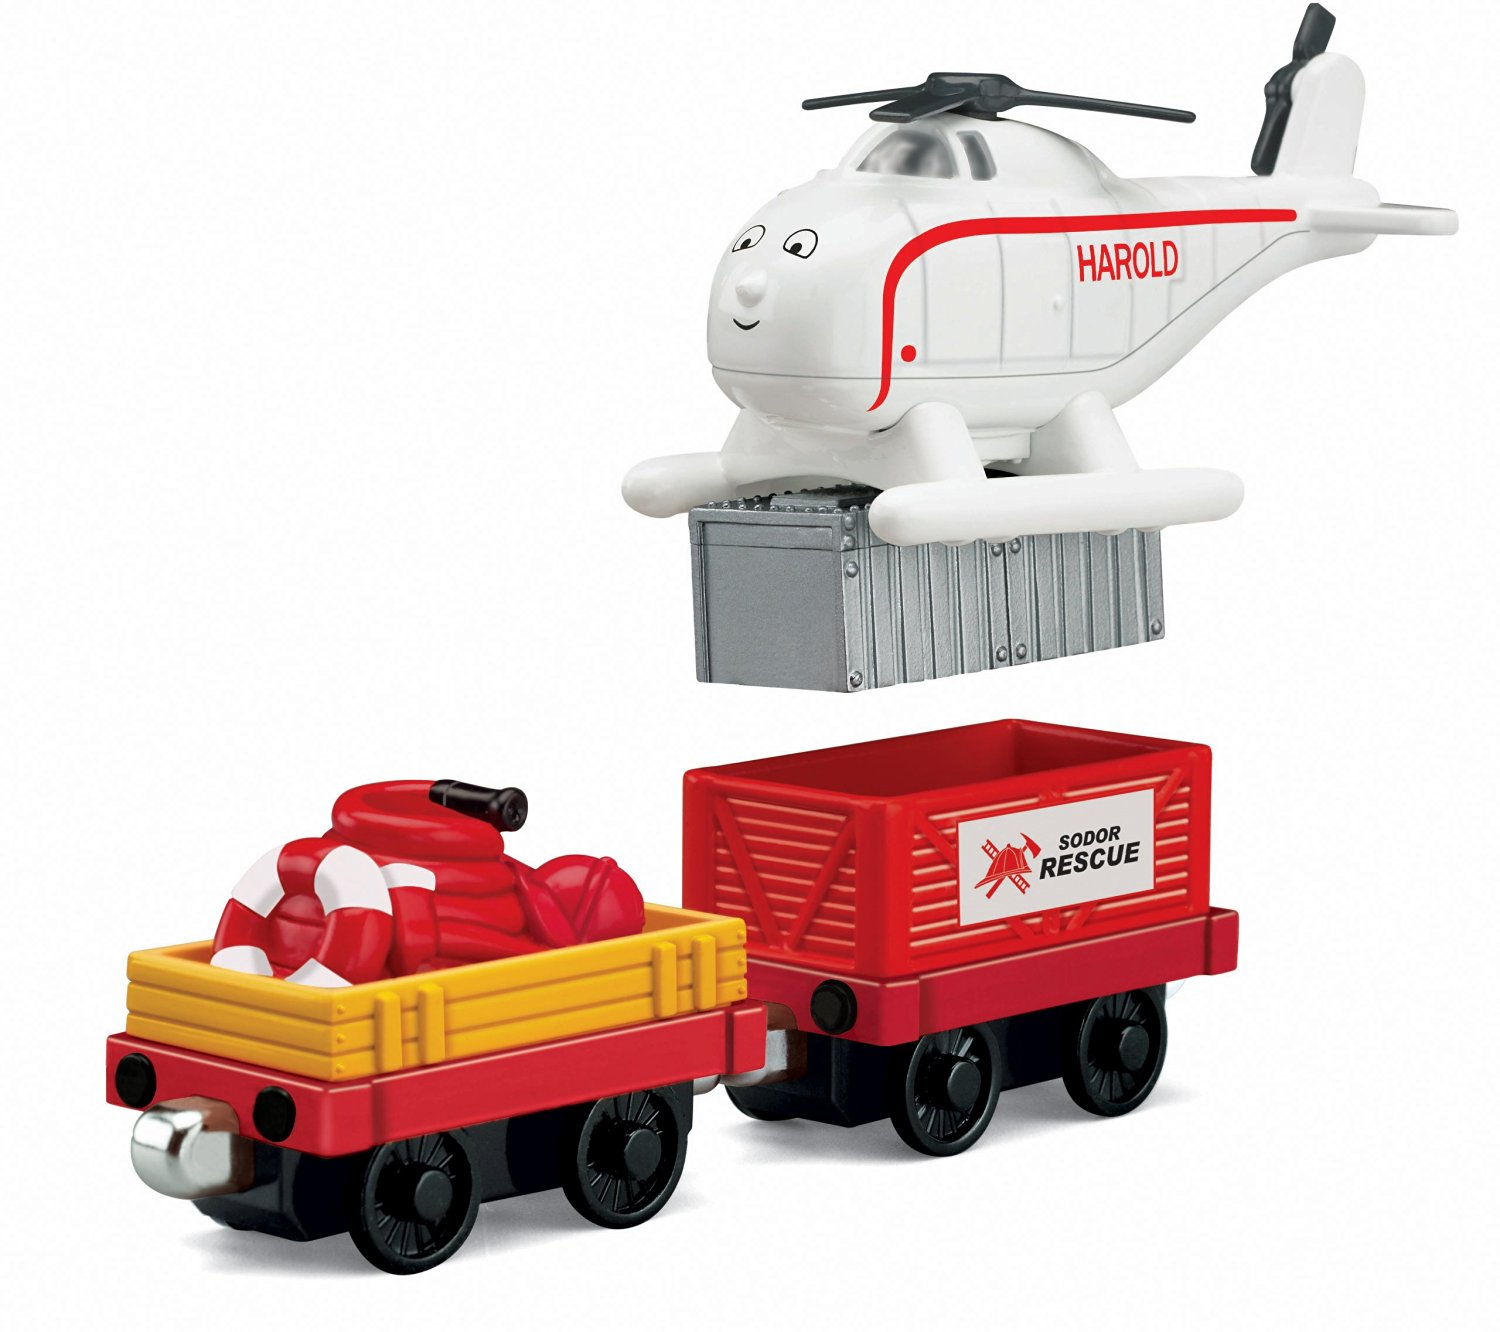 Thomas the Train: Take-n-Play Harold And The Search Cars